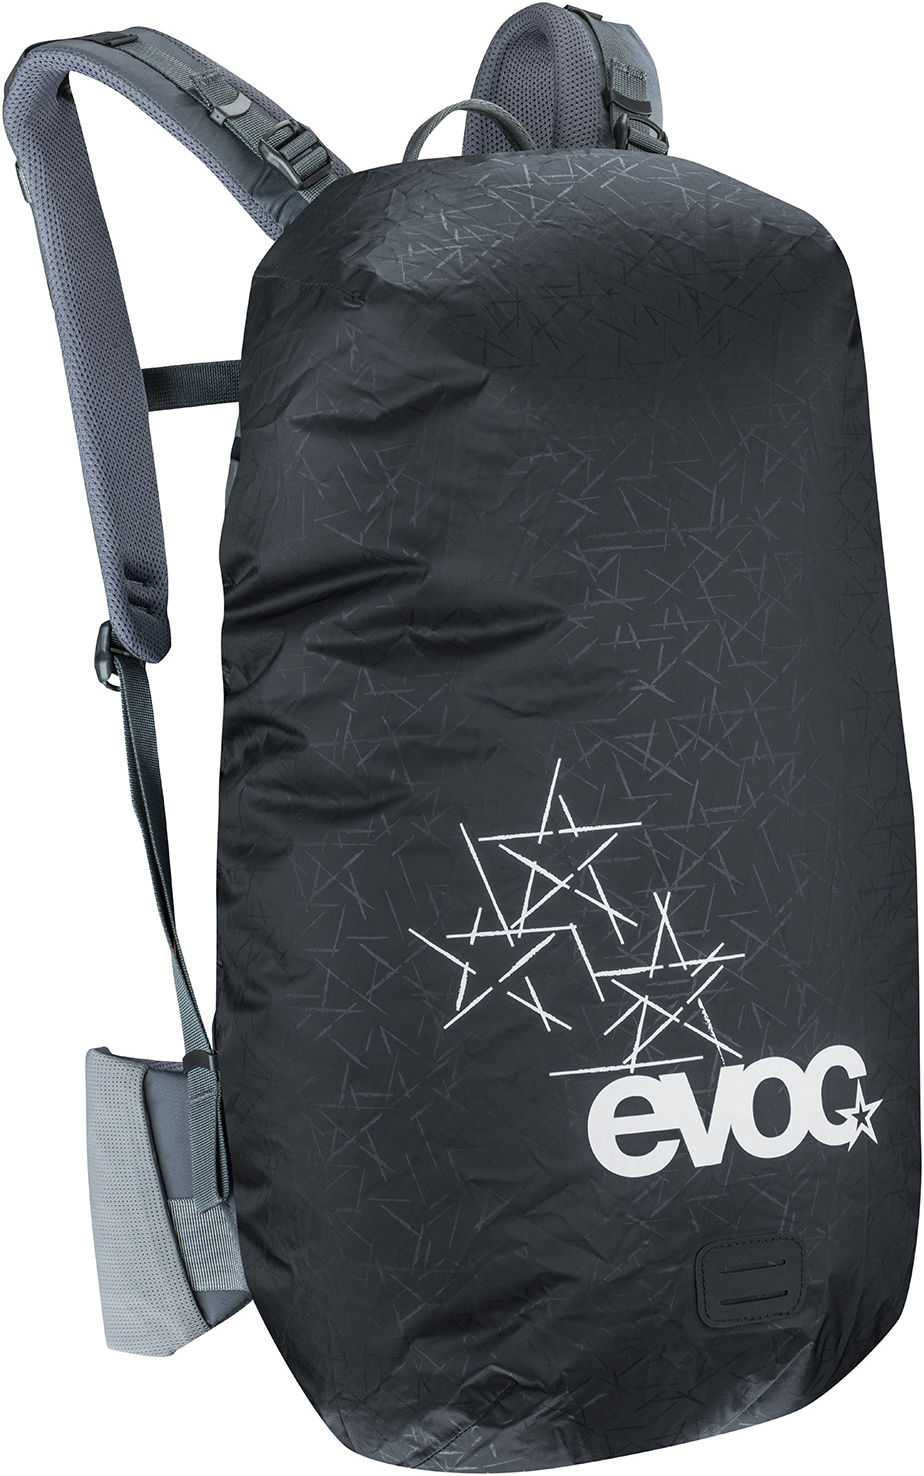 Evoc Large Raincover Sleeve   Bags accessories